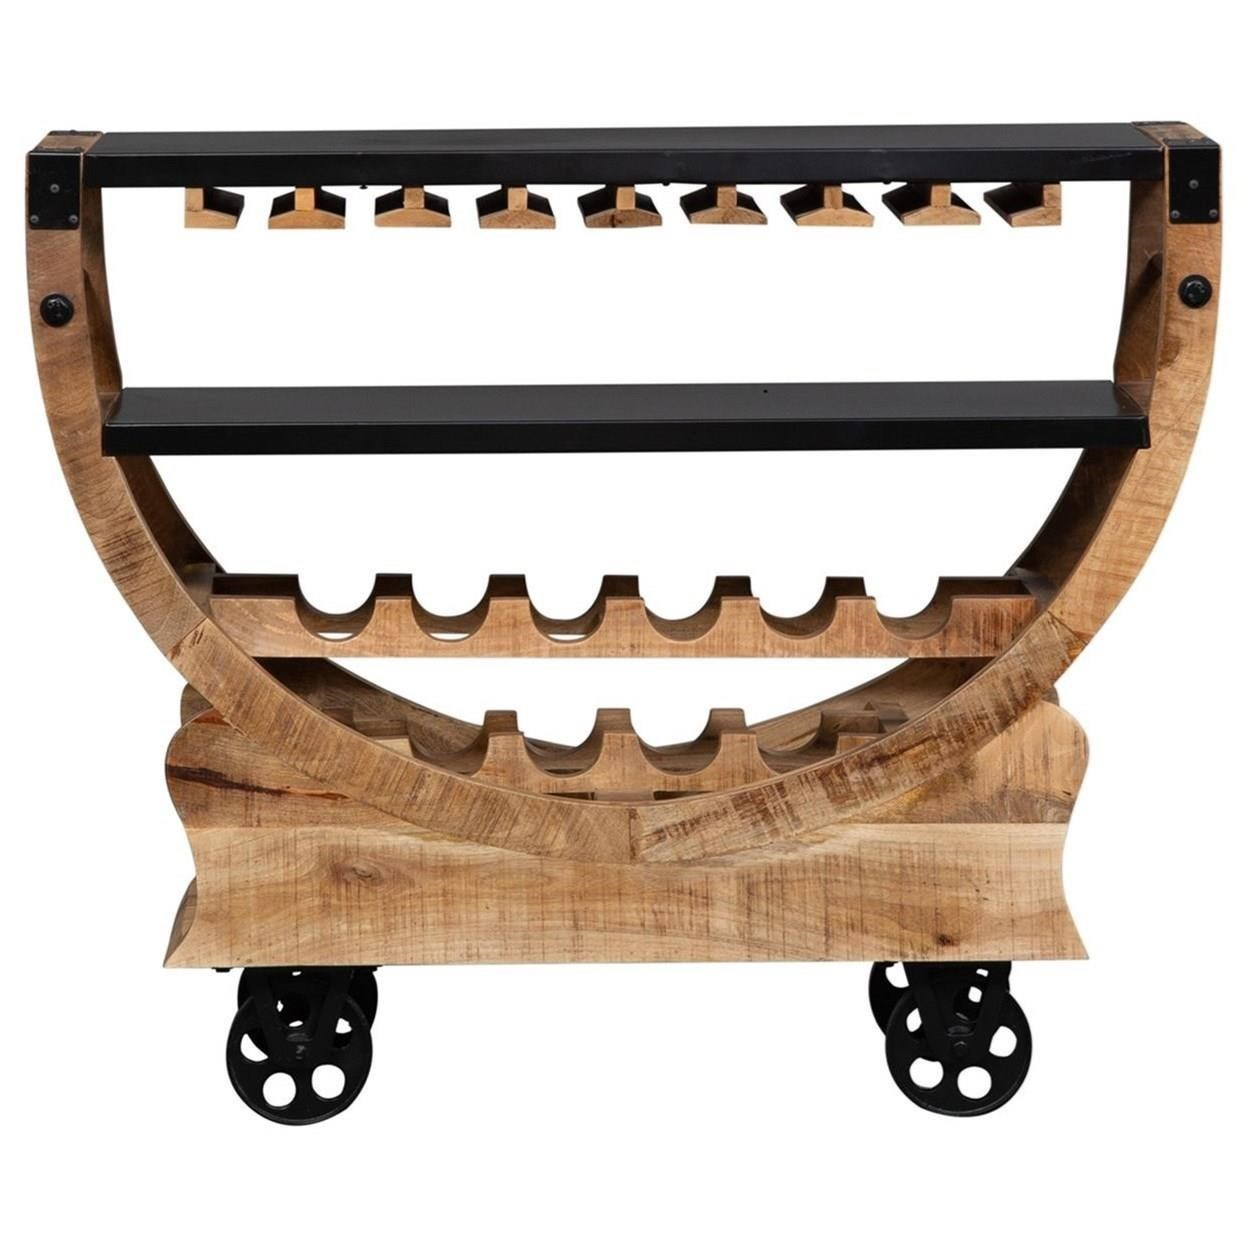 Danley Accent Bar Trolley by Libby at Walker's Furniture